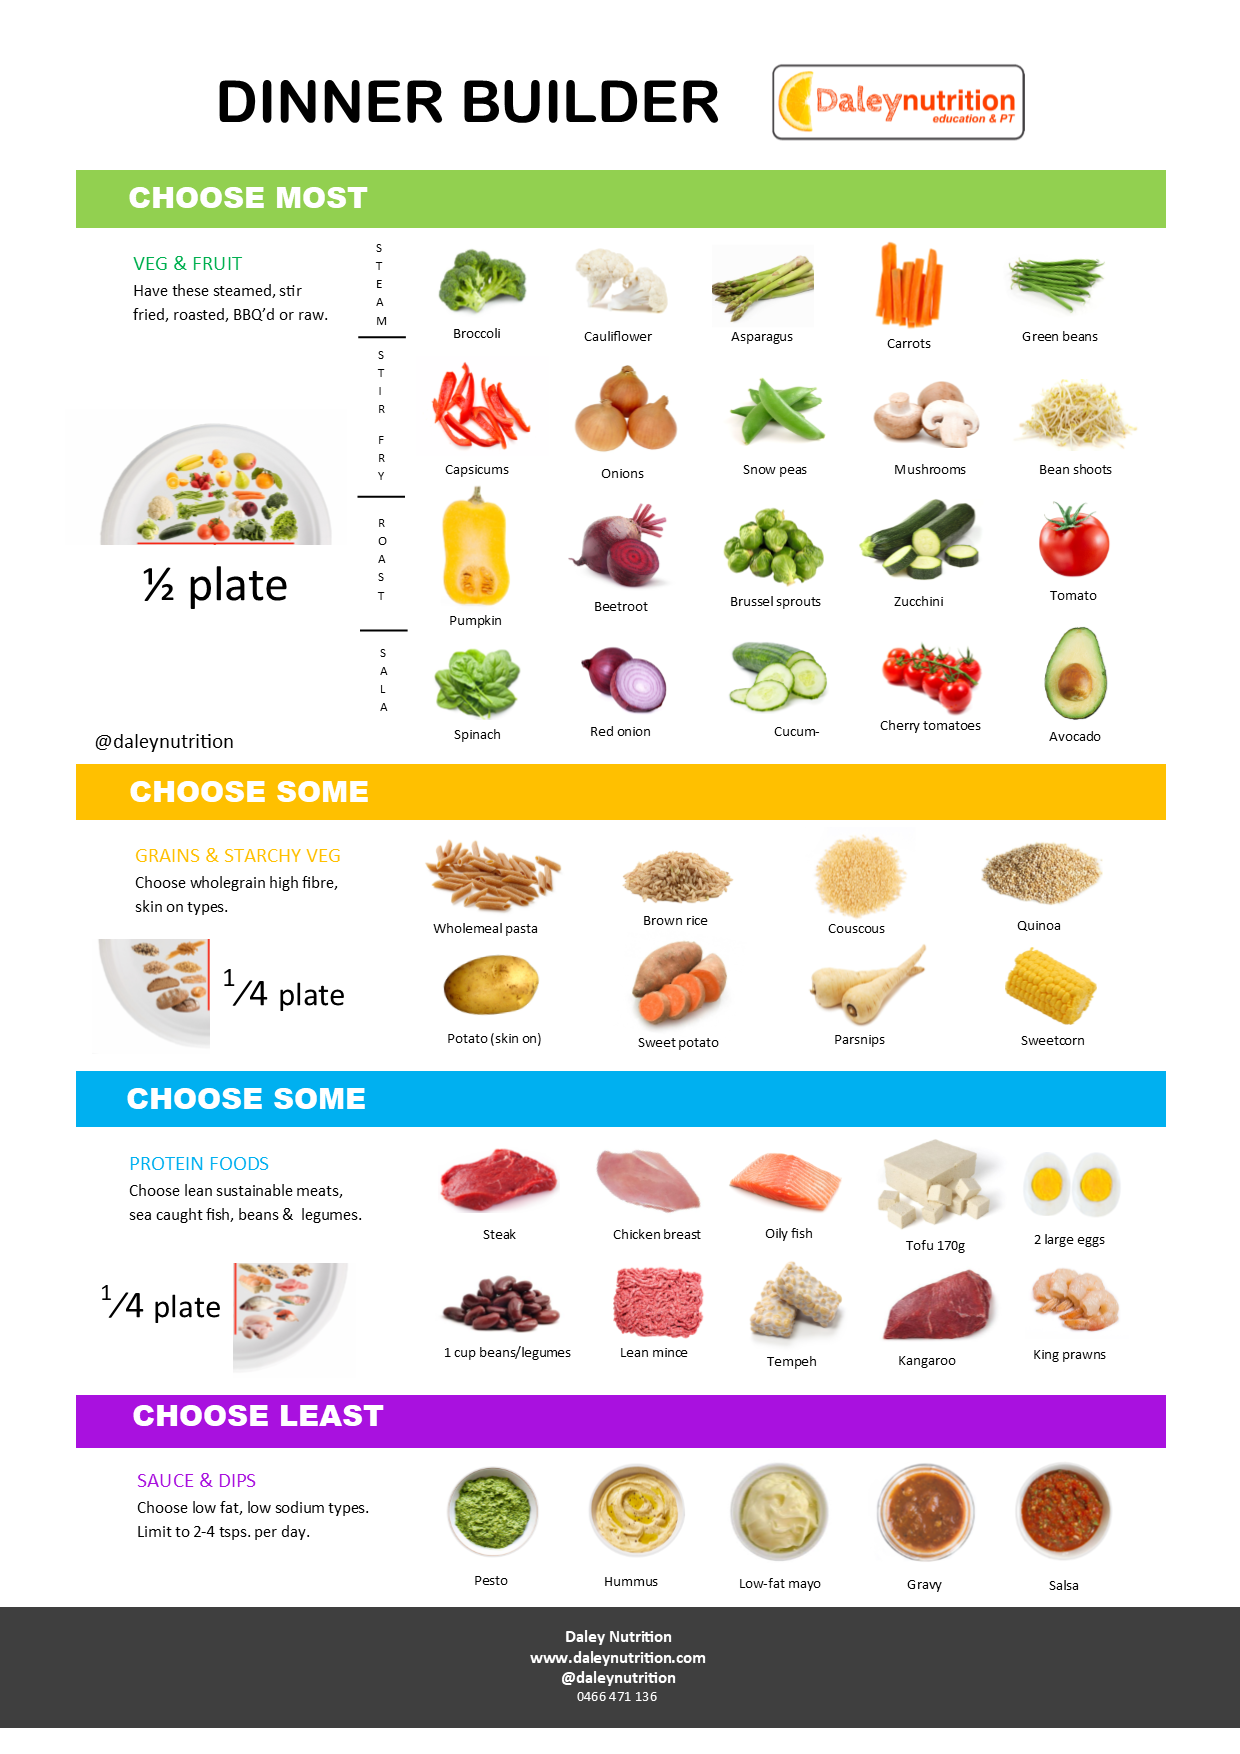 Dinner Builder Guide Daley Nutrition